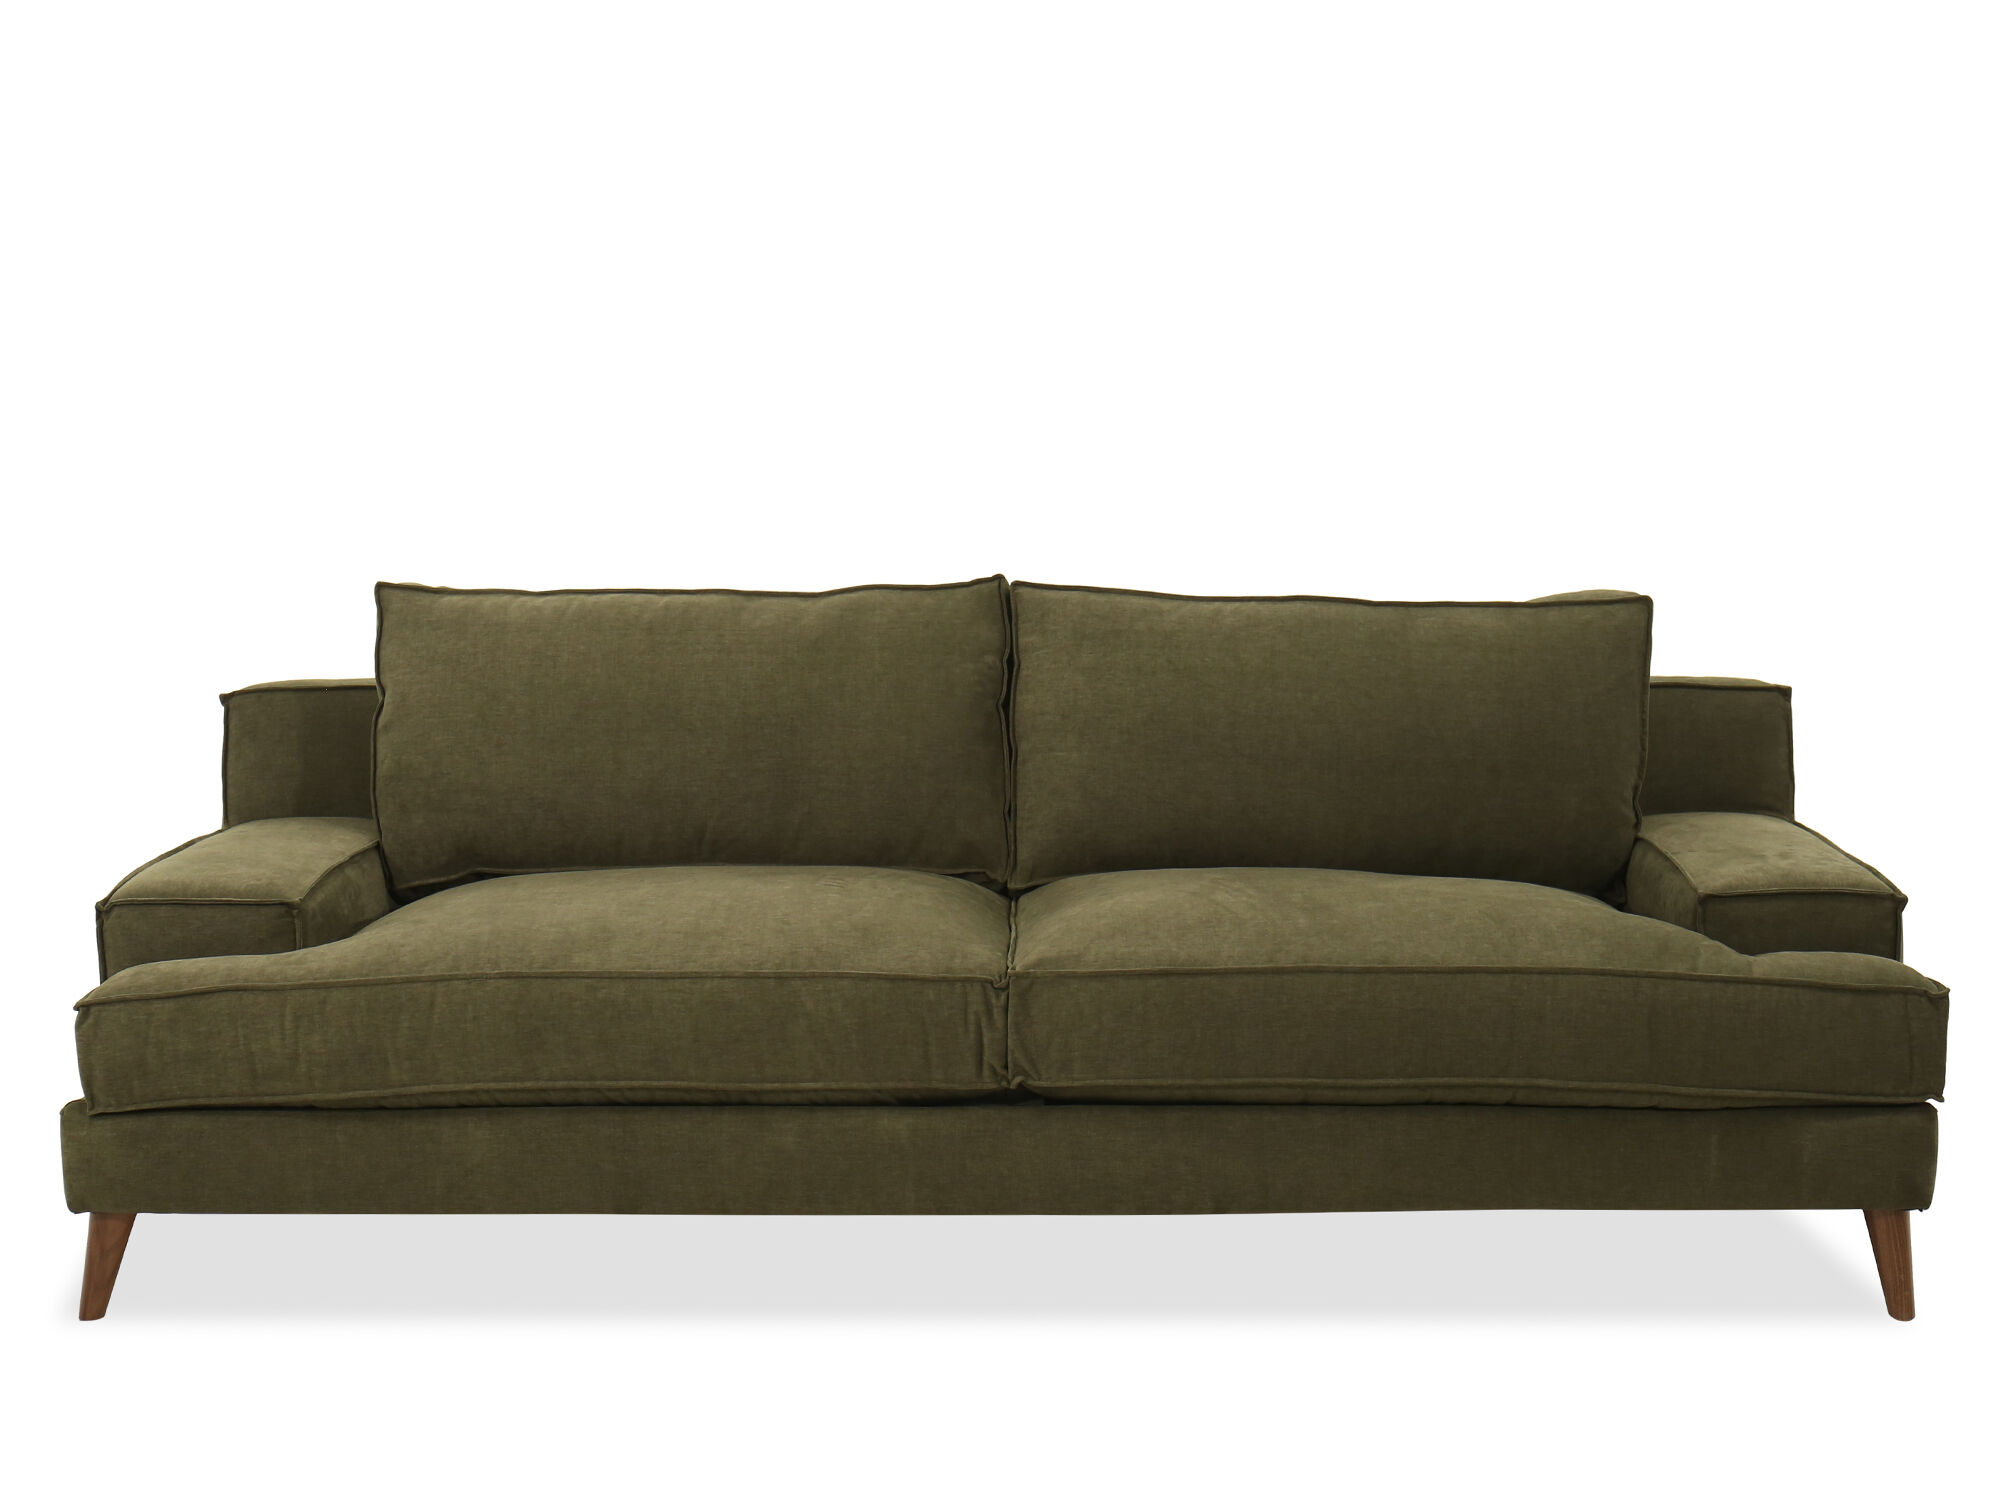 Modern Low Profile Plush Sofa In Forest Green Mathis